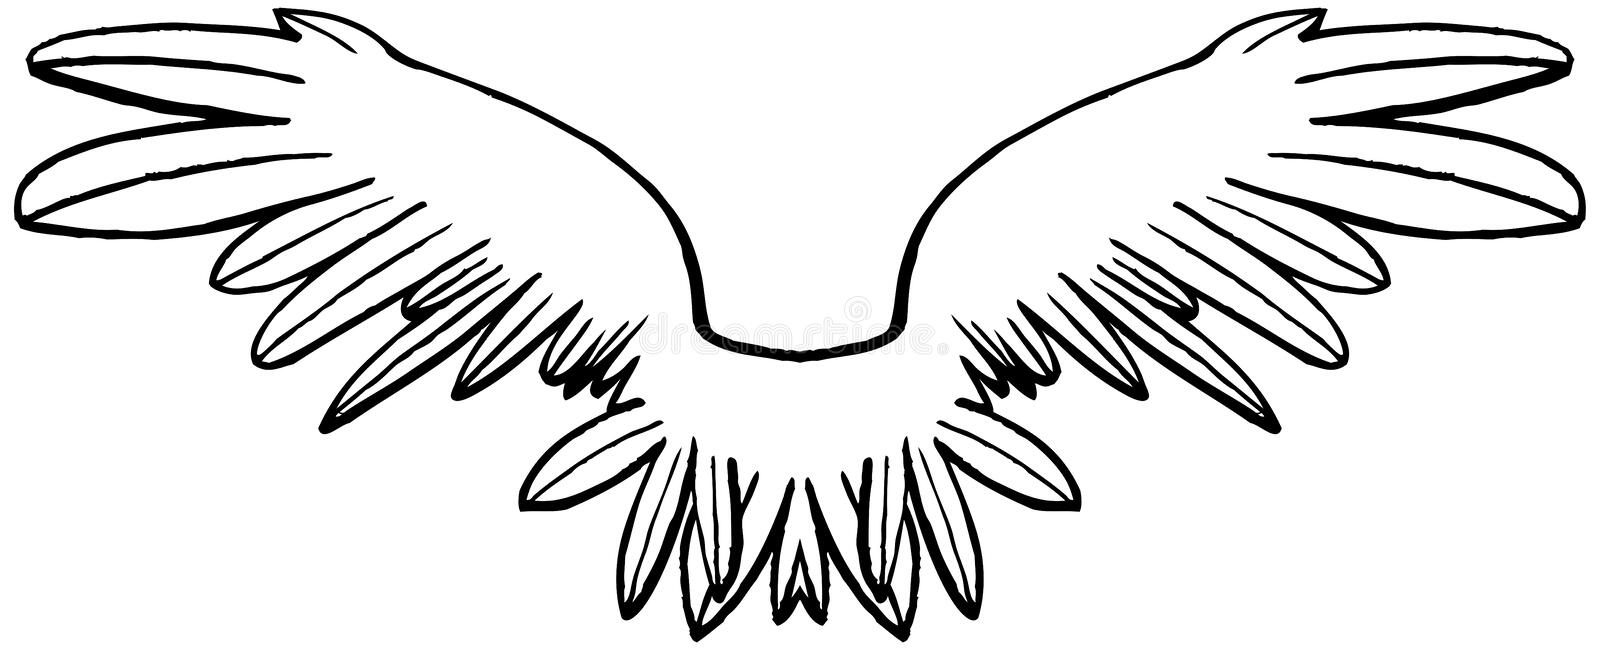 Linear black and white symmetrical wings. royalty free illustration